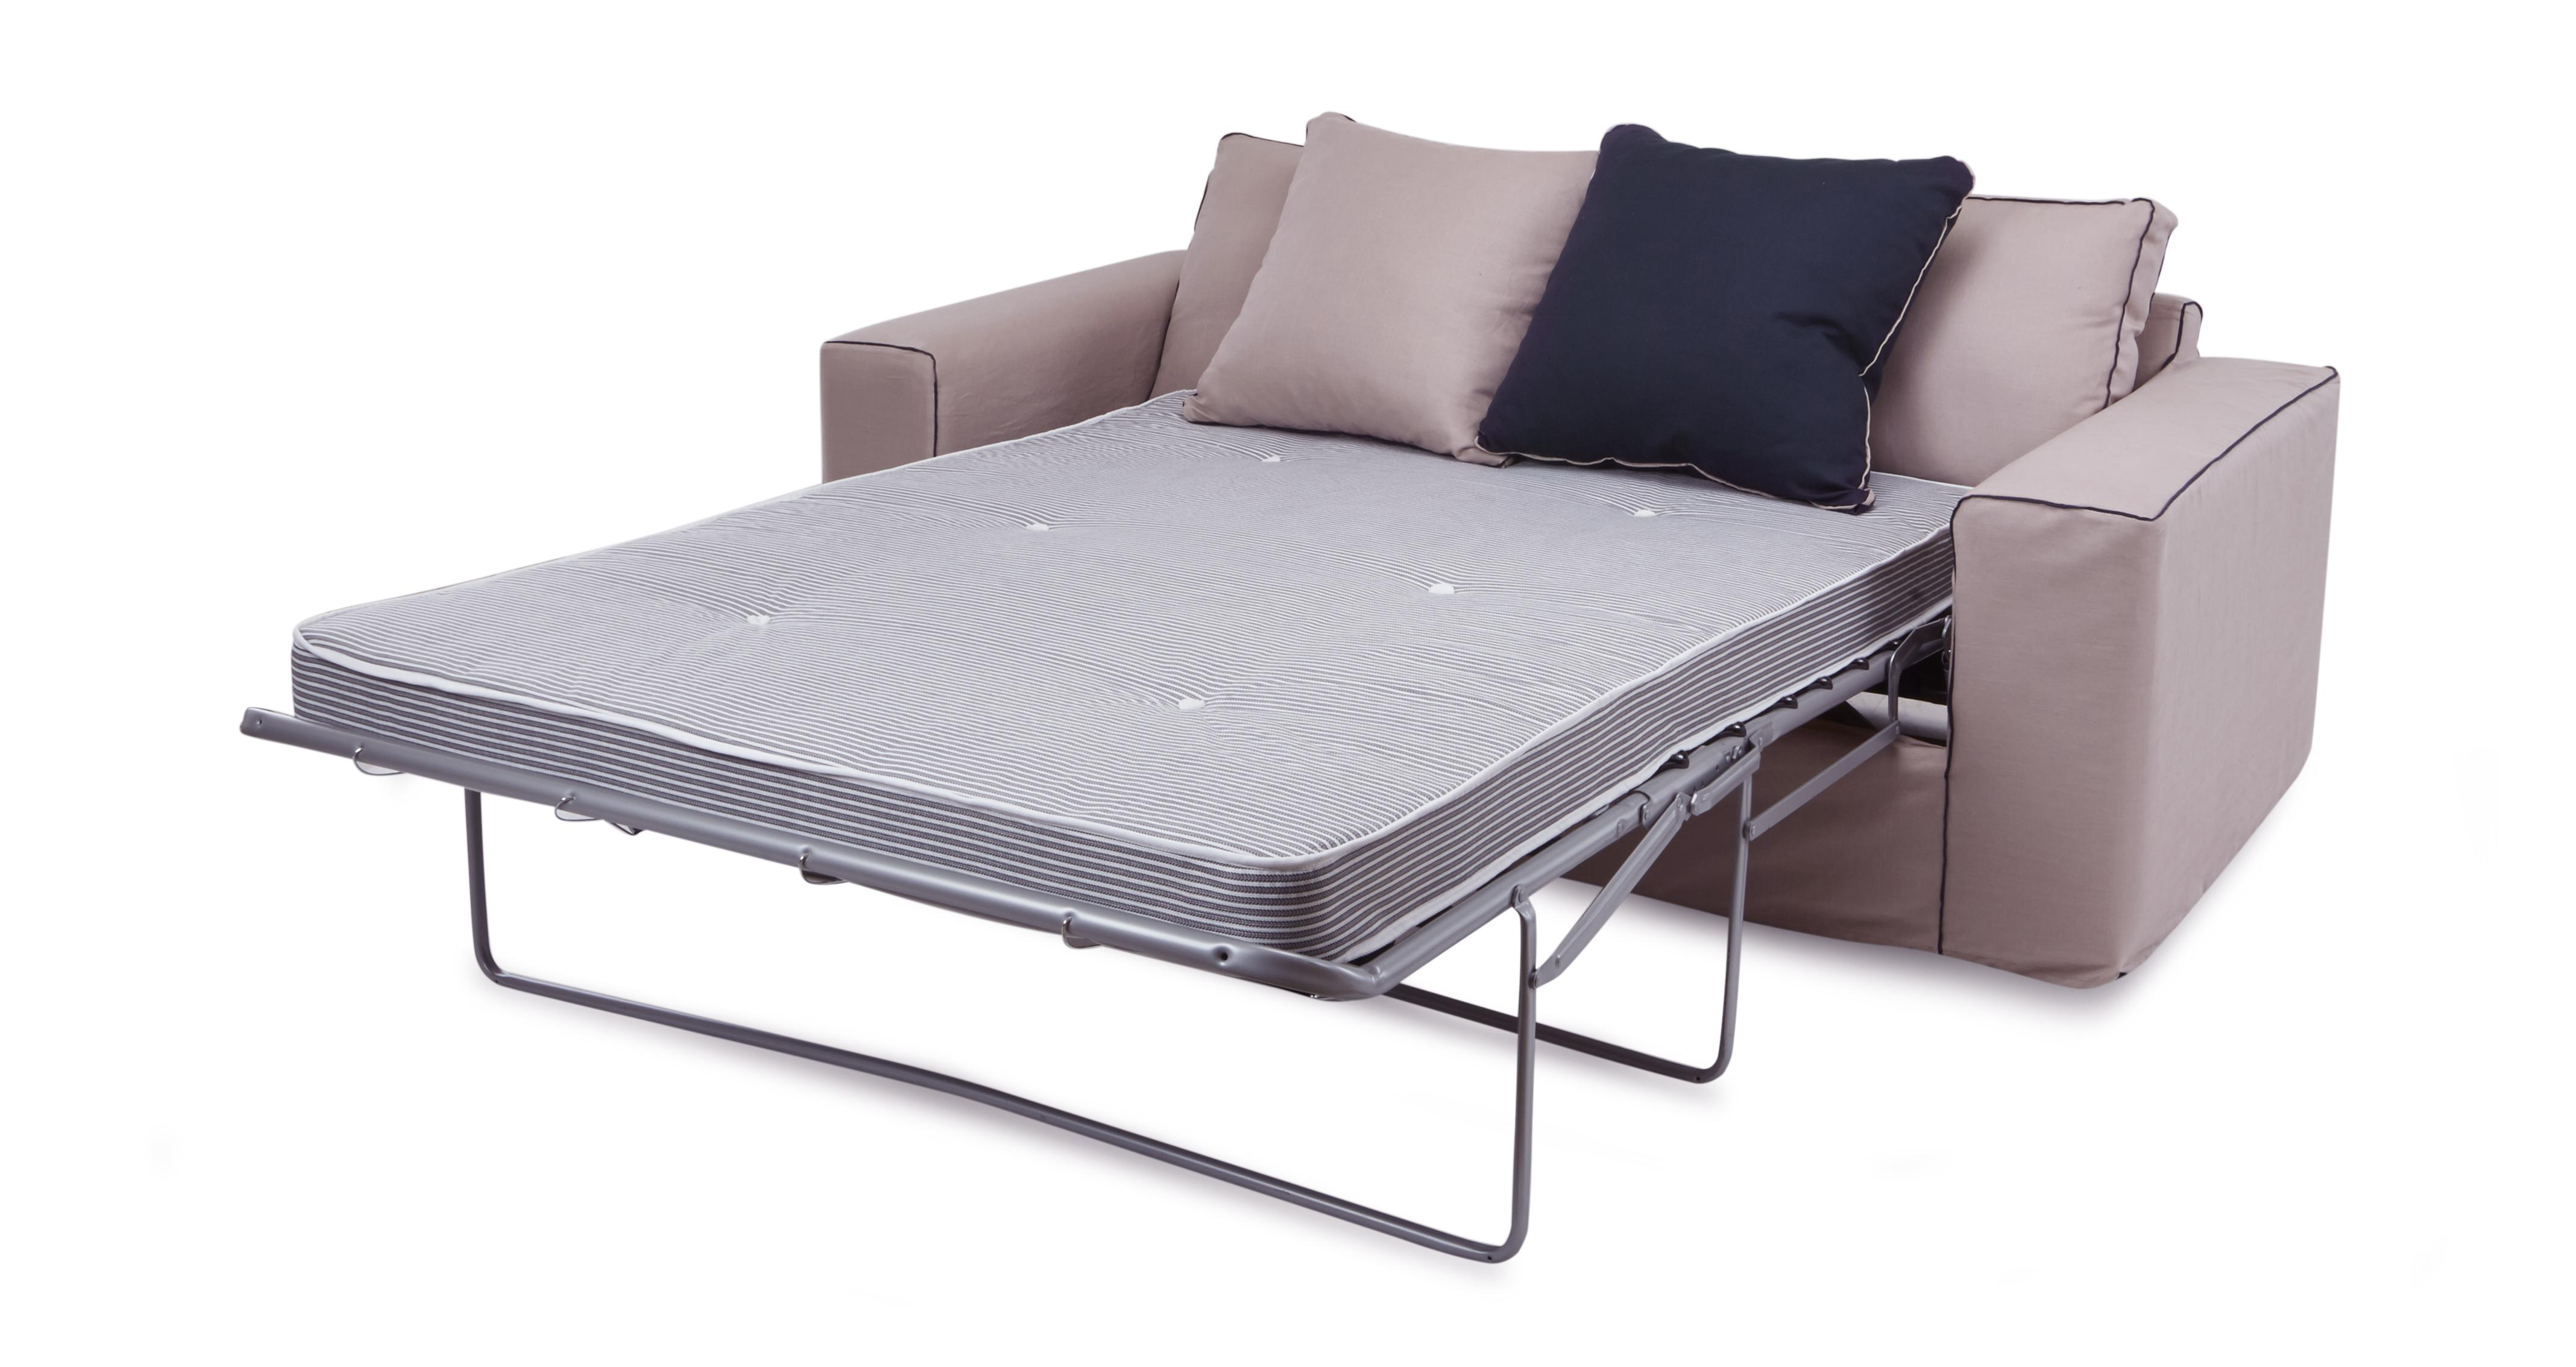 Slate 3 seater deluxe sofa bed dfs ireland for Sofa bed ireland